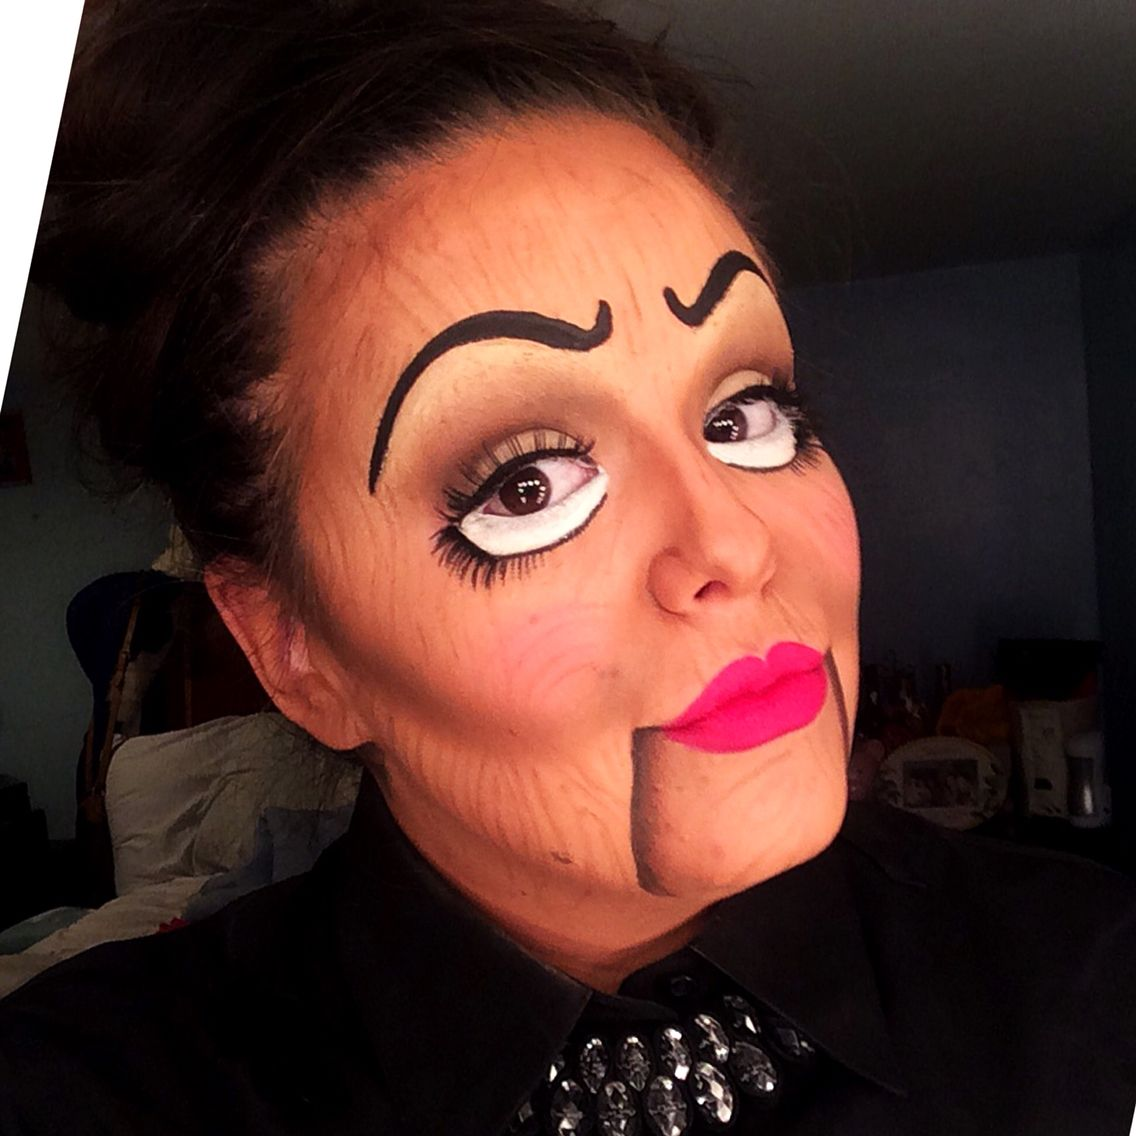 wooden ventriloquist doll makeup done by kween - Where Can I Get Halloween Makeup Done